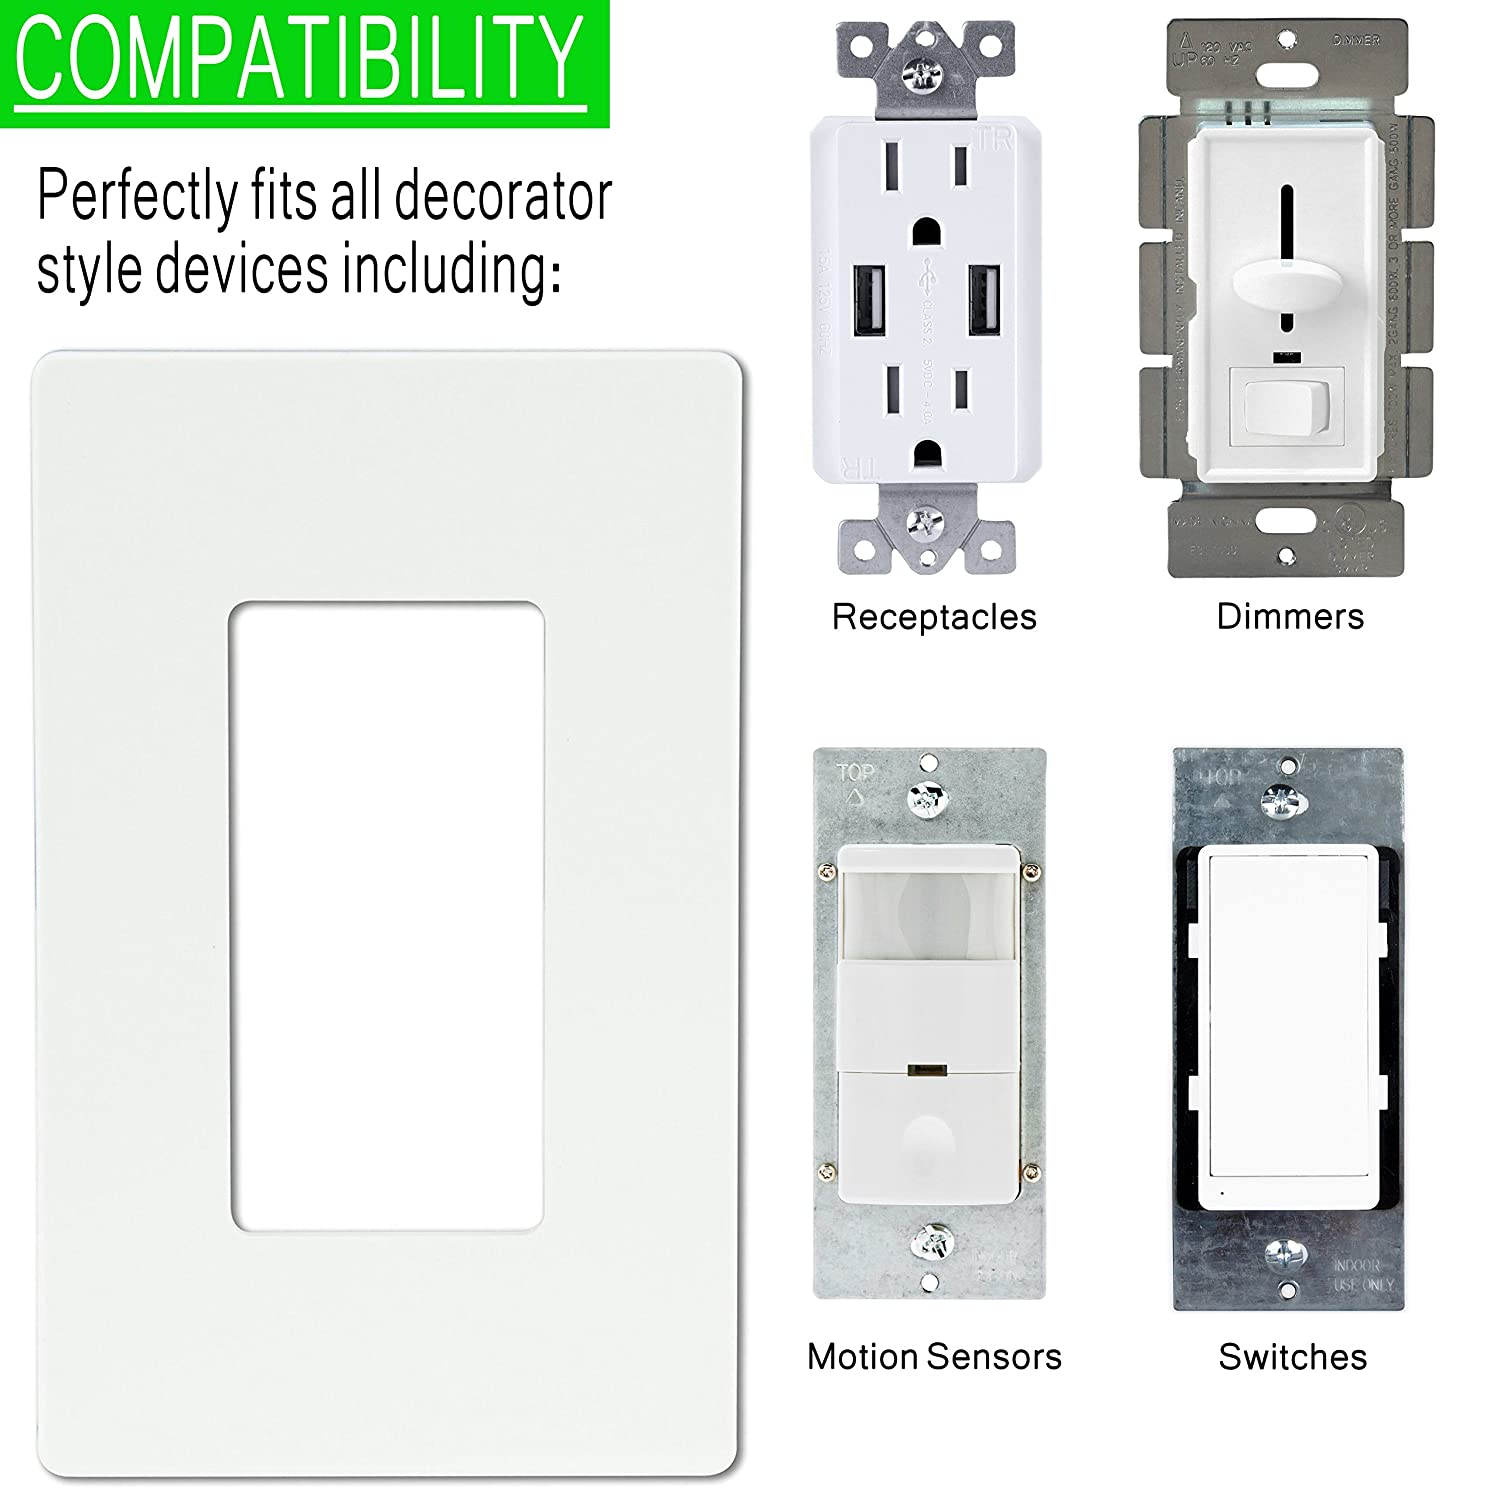 Si8833 screw less decoratorgfci wall plate 3 gang standard size si8833 screw less decoratorgfci wall plate 3 gang standard size child safe cover plate black amazon industrial scientific amipublicfo Image collections